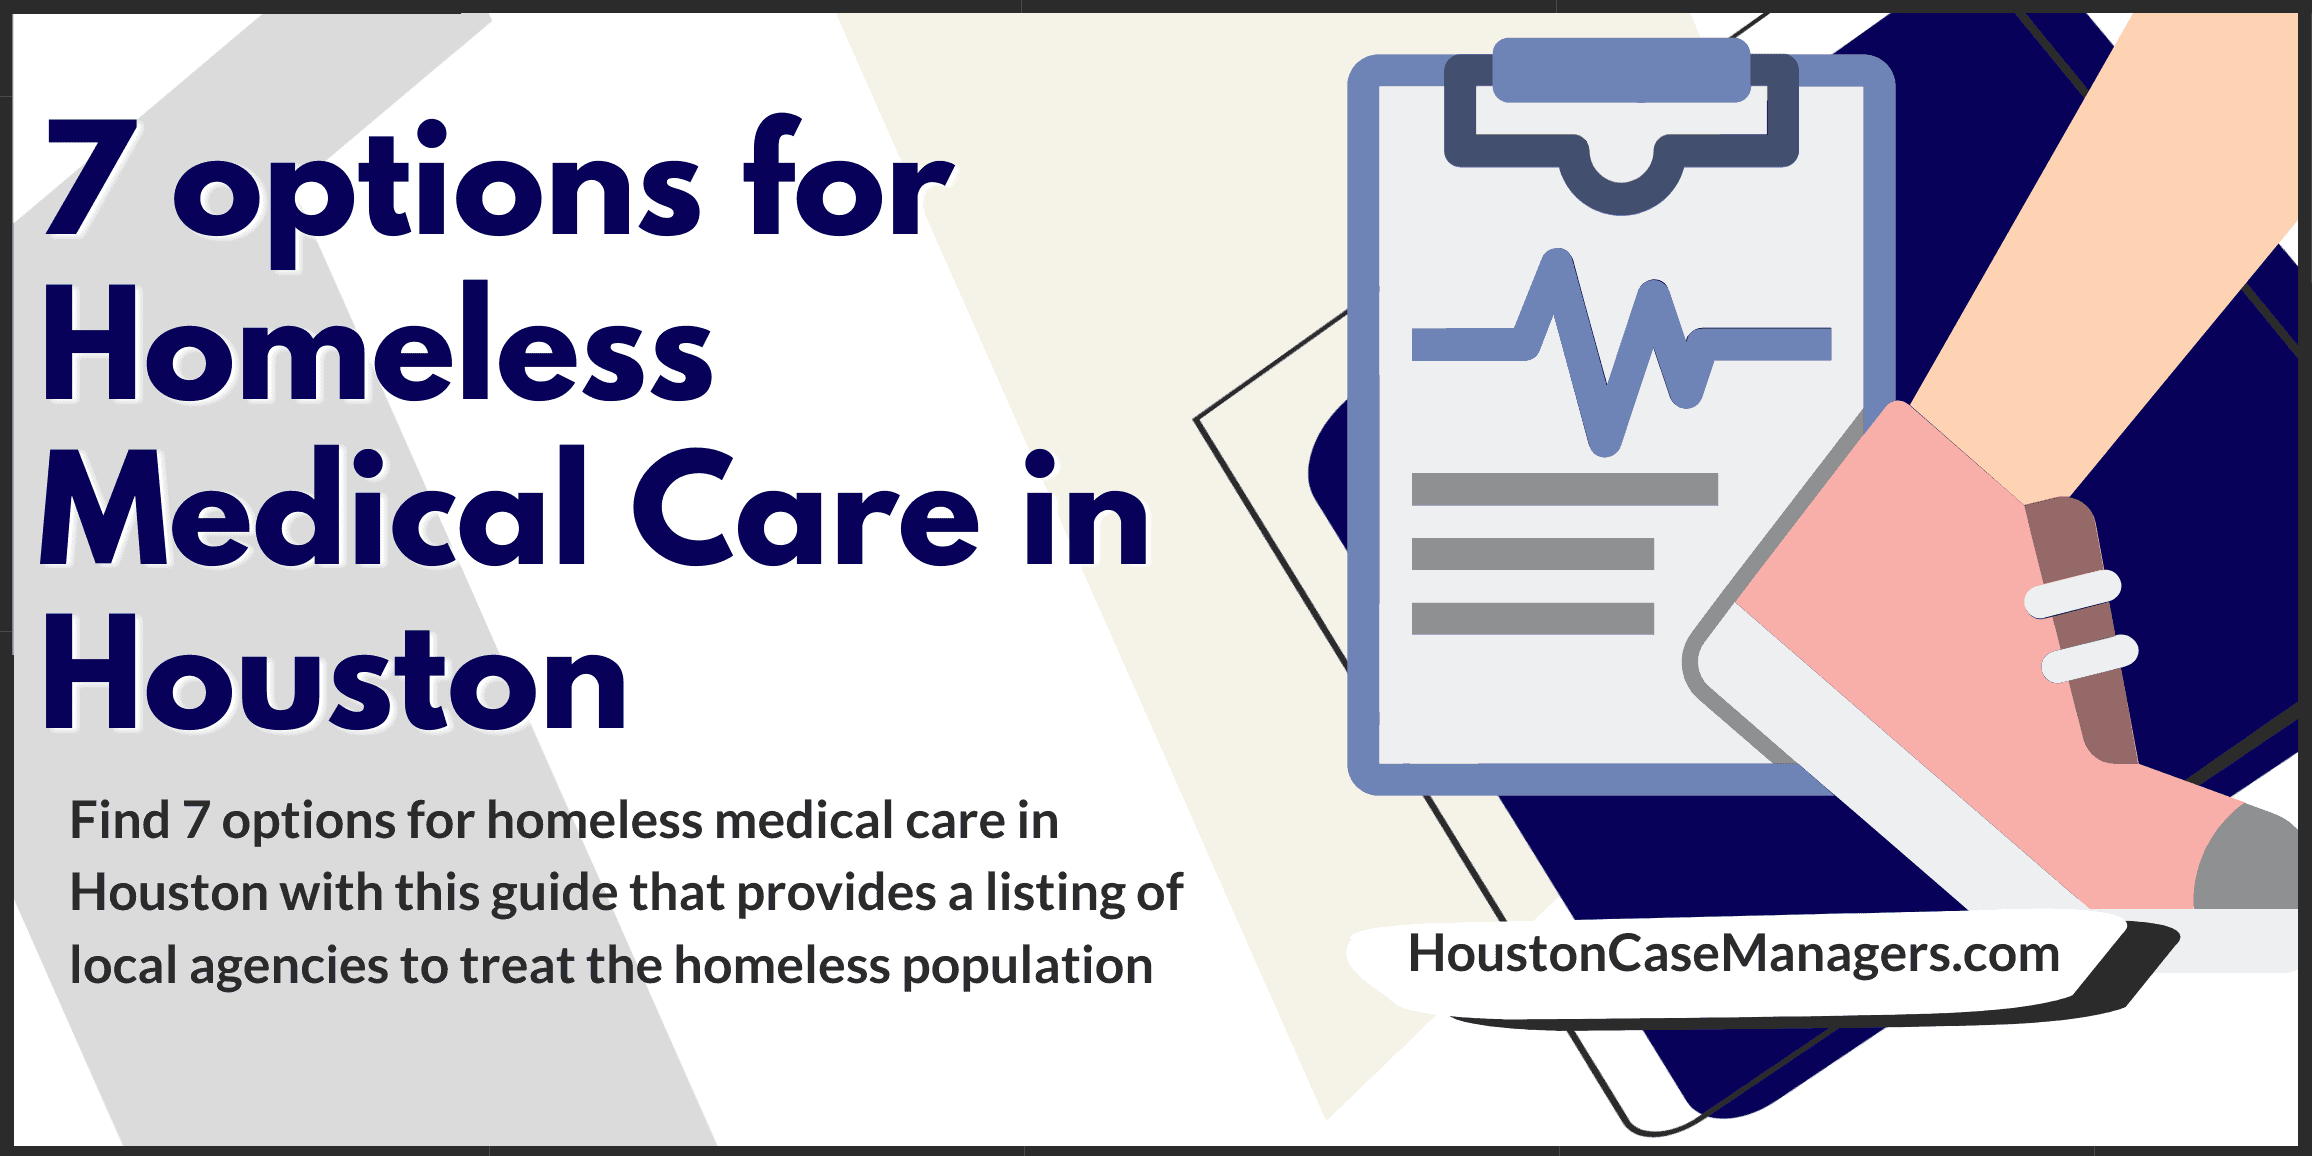 7 options for Homeless Medical Care in Houston